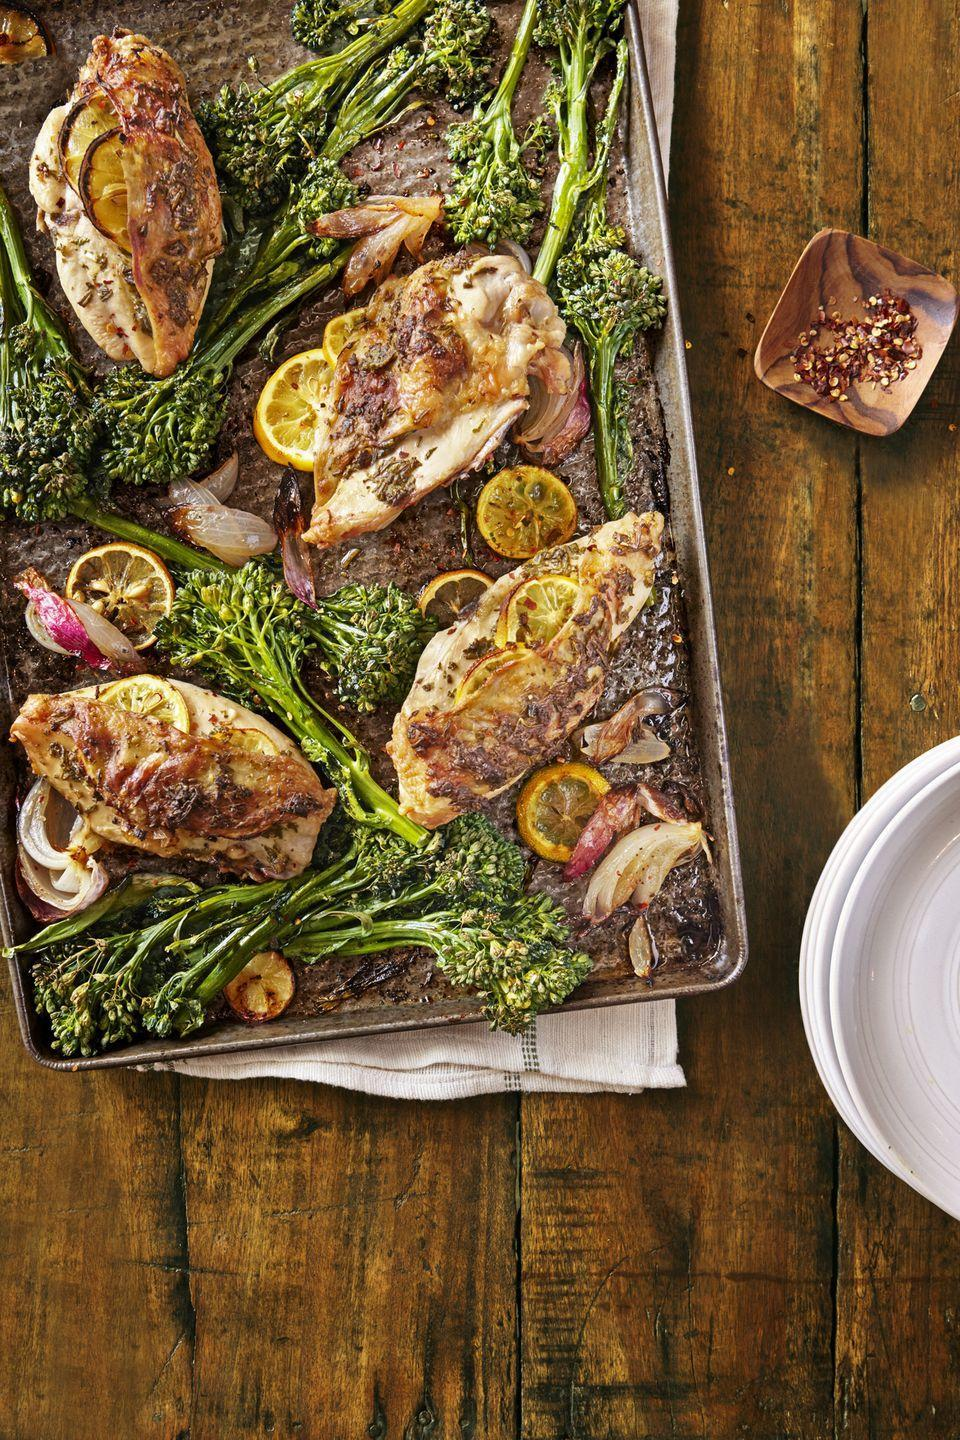 "<p>Vitamin-packed broccolini is an ingenious hybrid between broccoli and Chinese broccoli.</p><p><strong><a href=""https://www.countryliving.com/food-drinks/recipes/a39830/lemon-rosemary-chicken-with-roasted-broccolini-recipe/"" rel=""nofollow noopener"" target=""_blank"" data-ylk=""slk:Get the recipe."" class=""link rapid-noclick-resp"">Get the recipe.</a></strong><br></p><p><a class=""link rapid-noclick-resp"" href=""https://www.amazon.com/Nordicware-Natural-Aluminum-Commercial-Bakers/dp/B0049C2S32/?tag=syn-yahoo-20&ascsubtag=%5Bartid%7C10050.g.680%5Bsrc%7Cyahoo-us"" rel=""nofollow noopener"" target=""_blank"" data-ylk=""slk:SHOP BAKING SHEETS"">SHOP BAKING SHEETS</a> </p>"